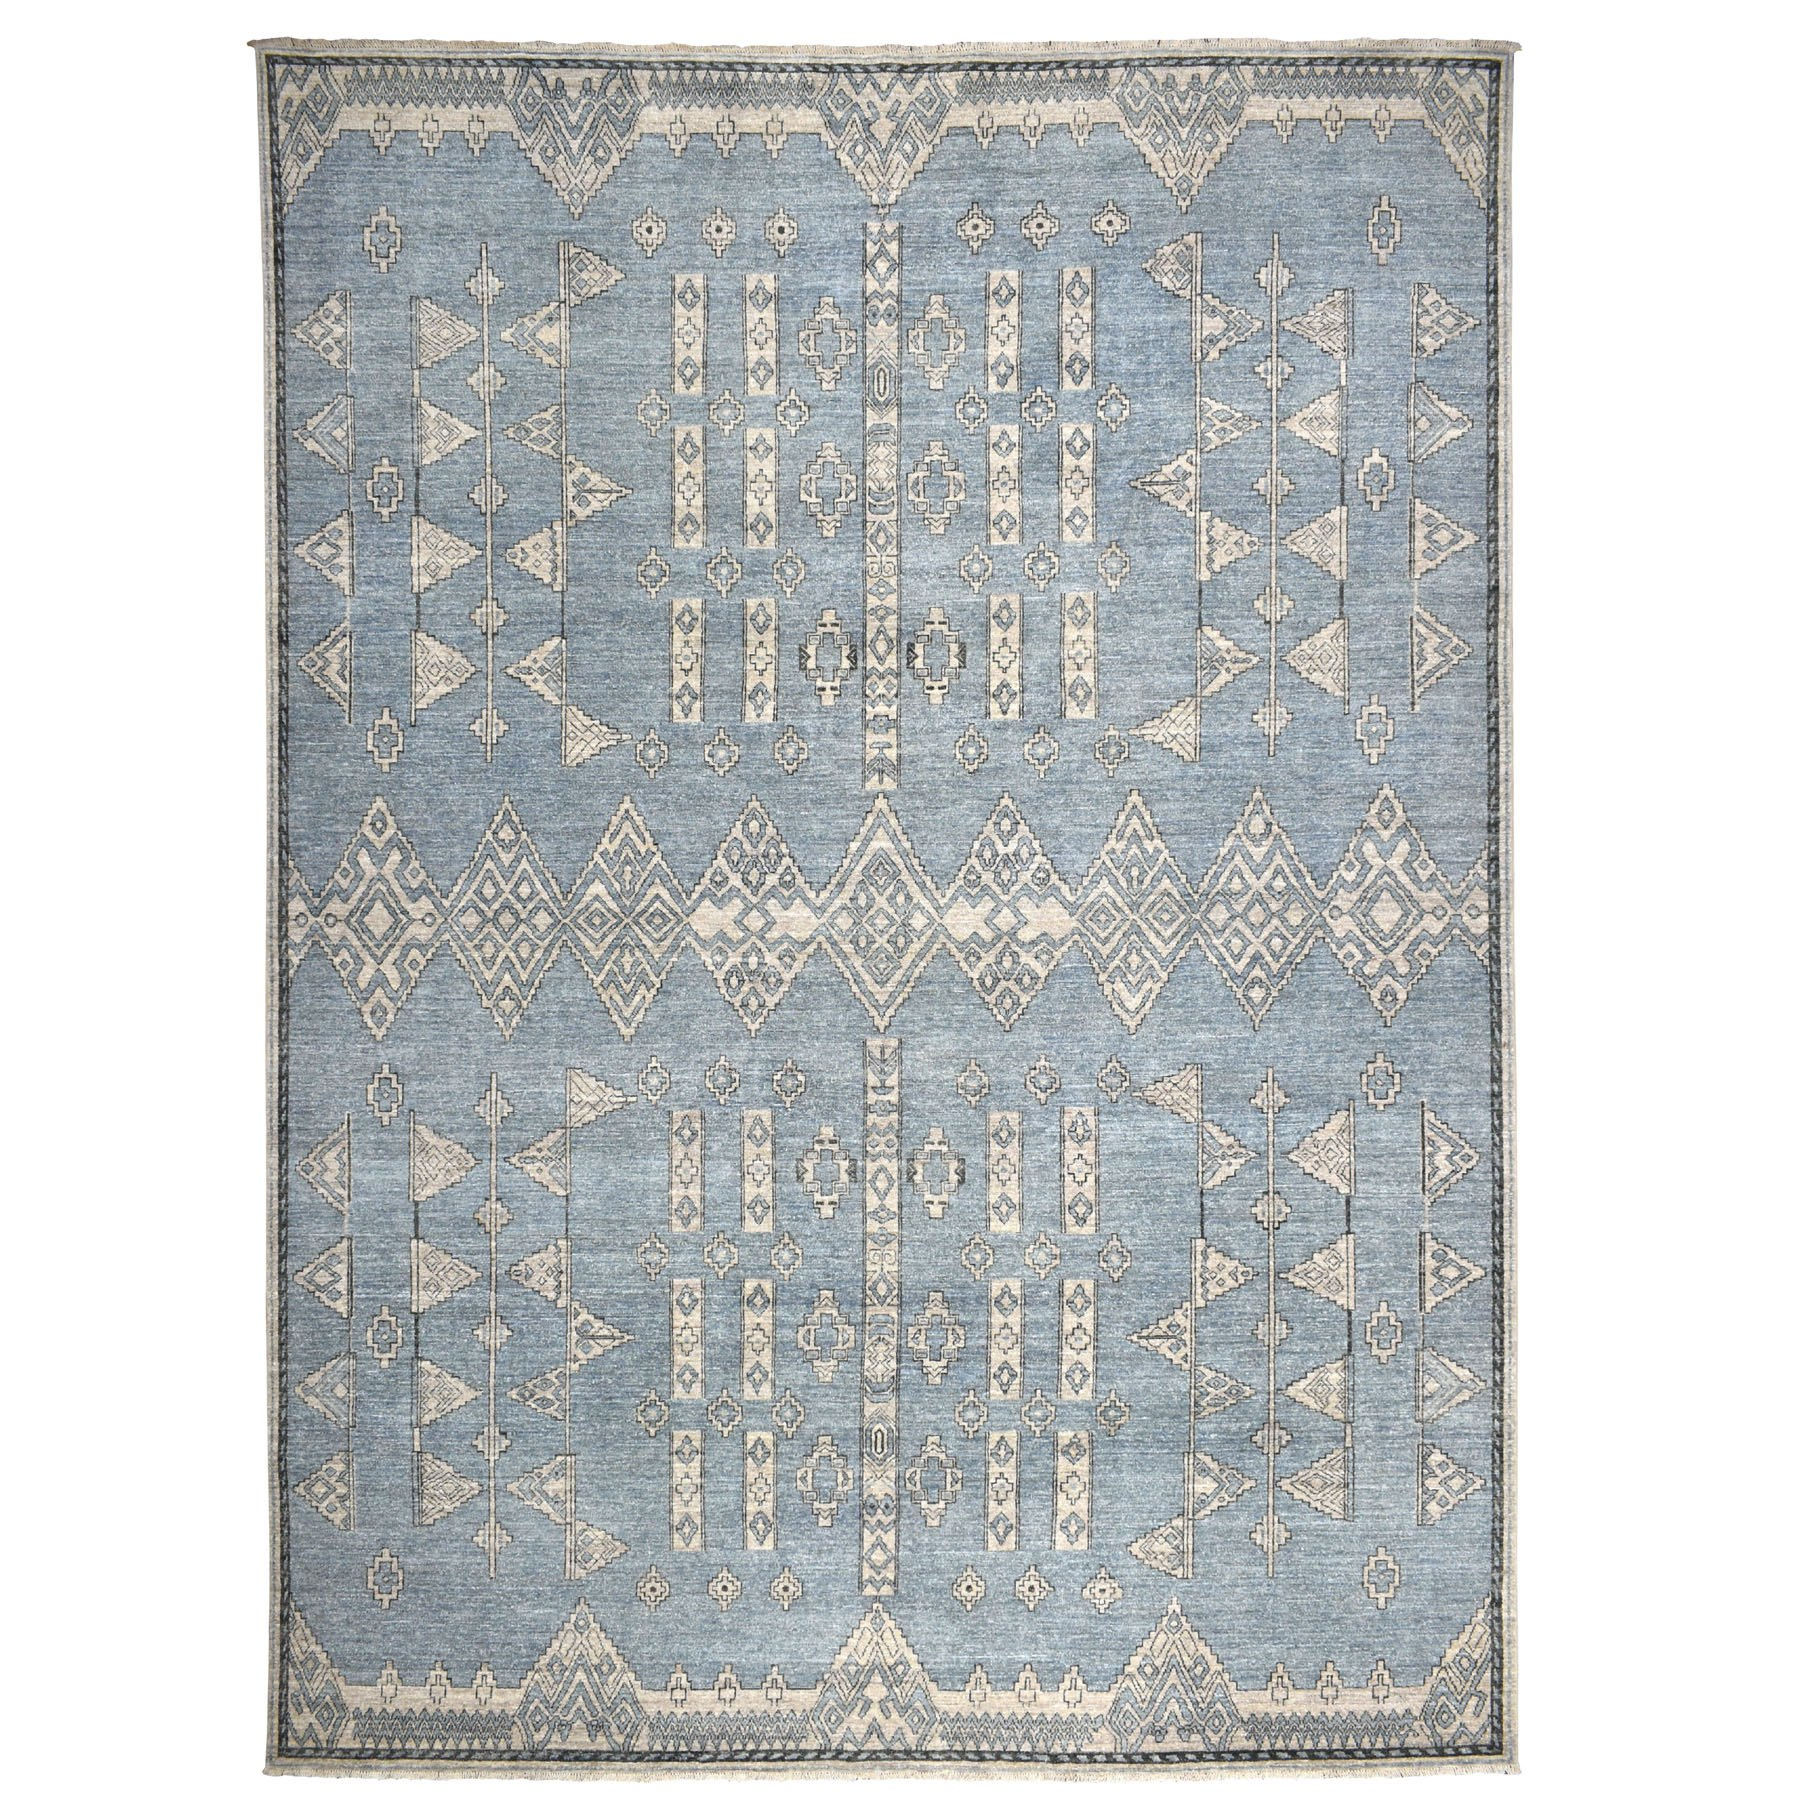 """10'1""""x13'10"""" Blue Peshawar With Berber Motifs Design Pure Wool Hand-Knotted Oriental Rug 52962"""